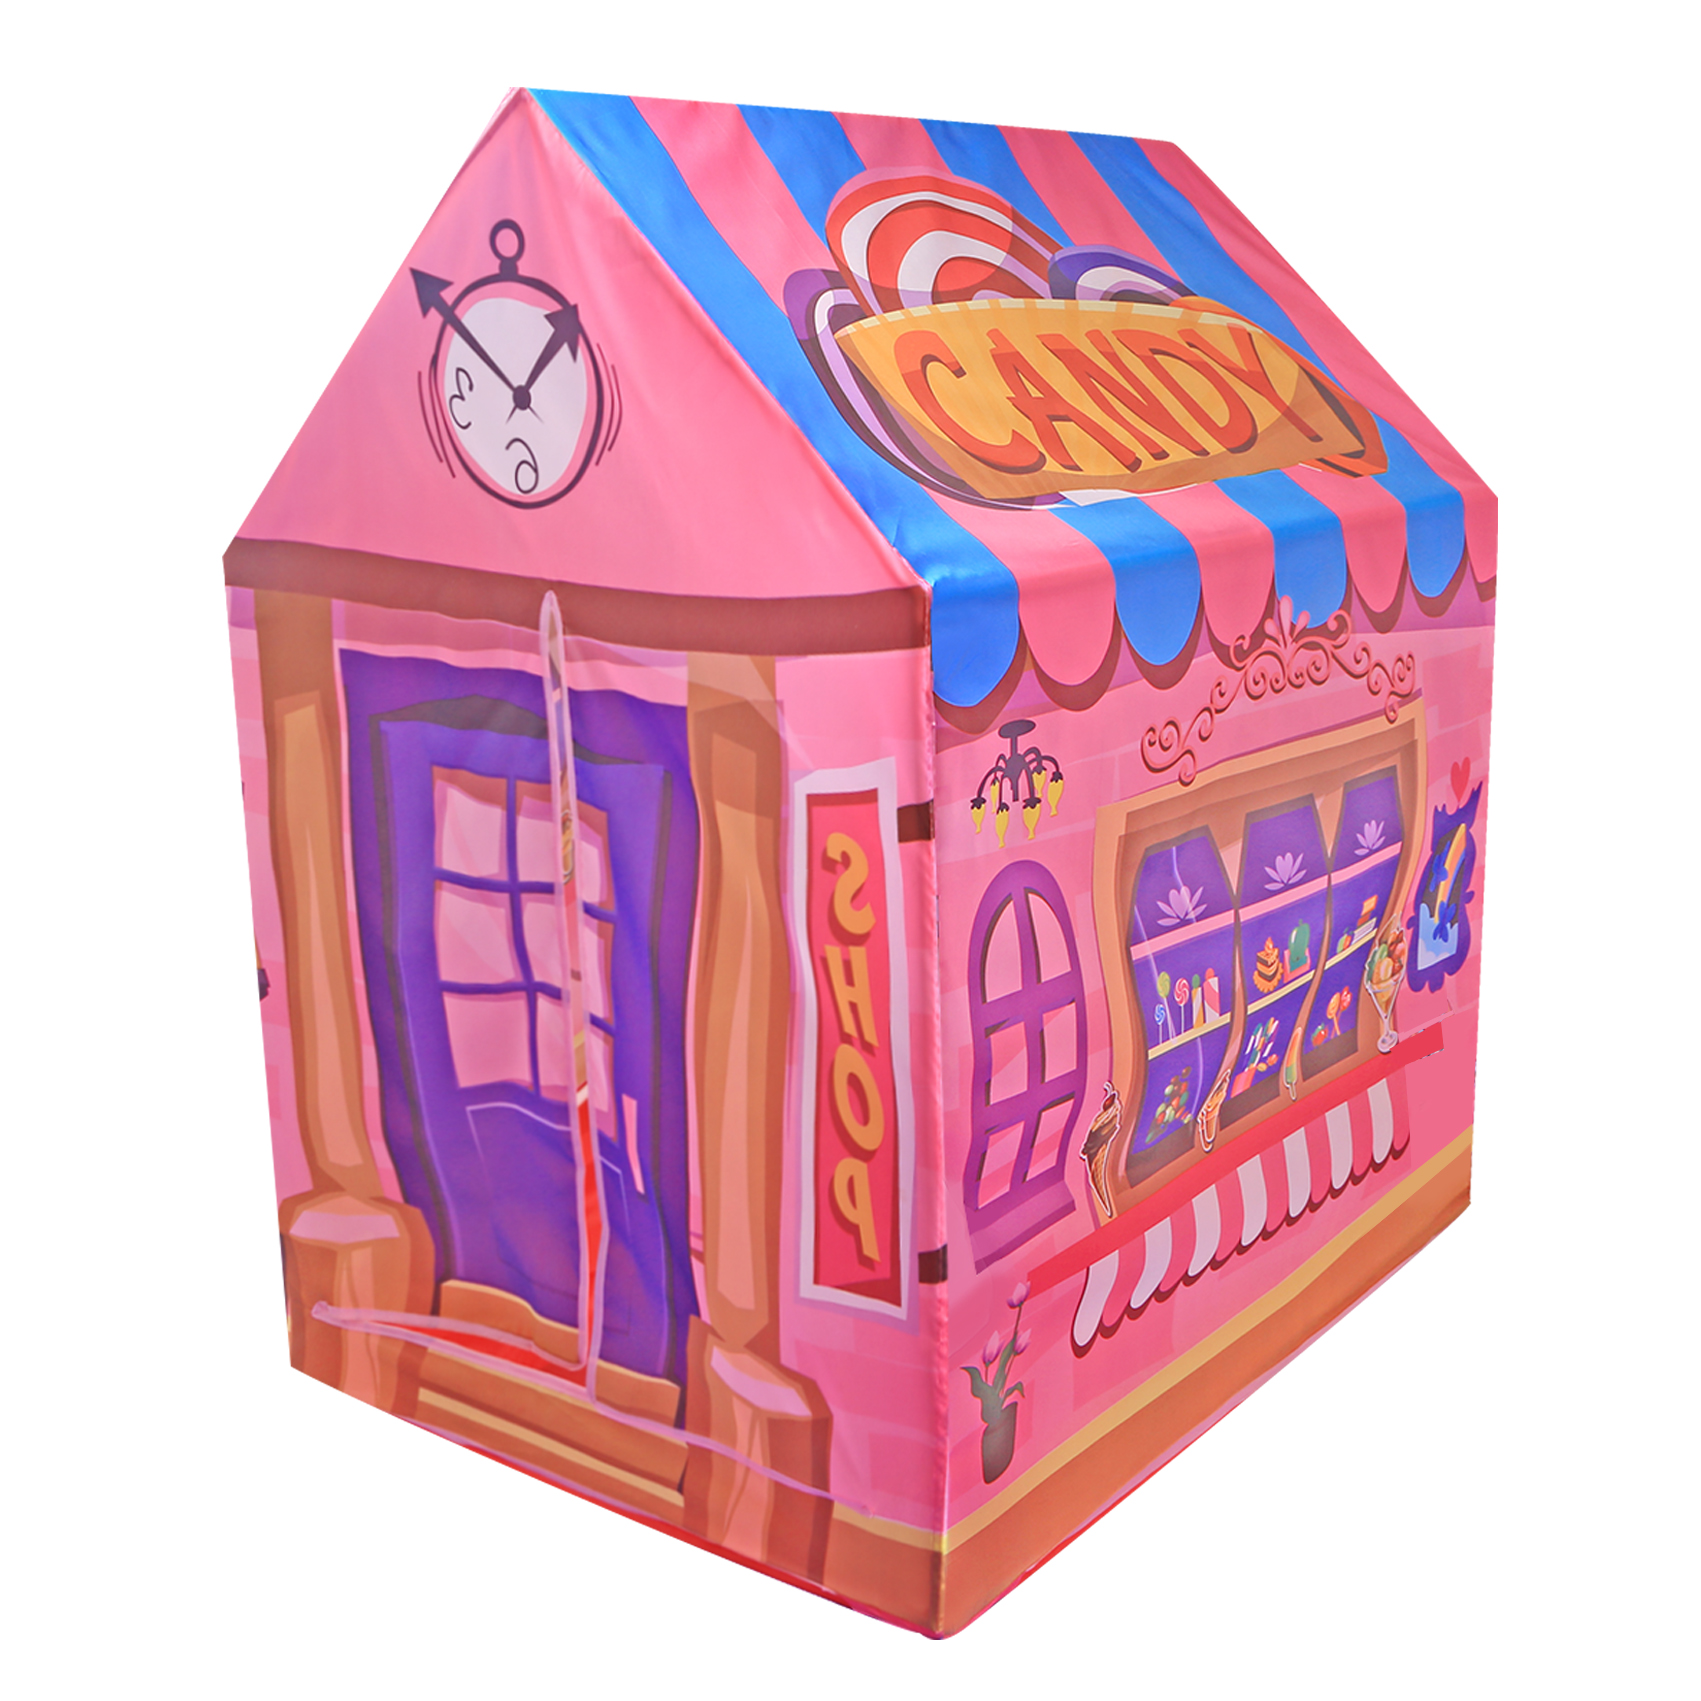 Pink Candy Shop Play Toy Tent Indoor Outdoor Garden Playhouse Foldable Large 40 Inch Play Tent Store for Baby Kids Toys Gift image